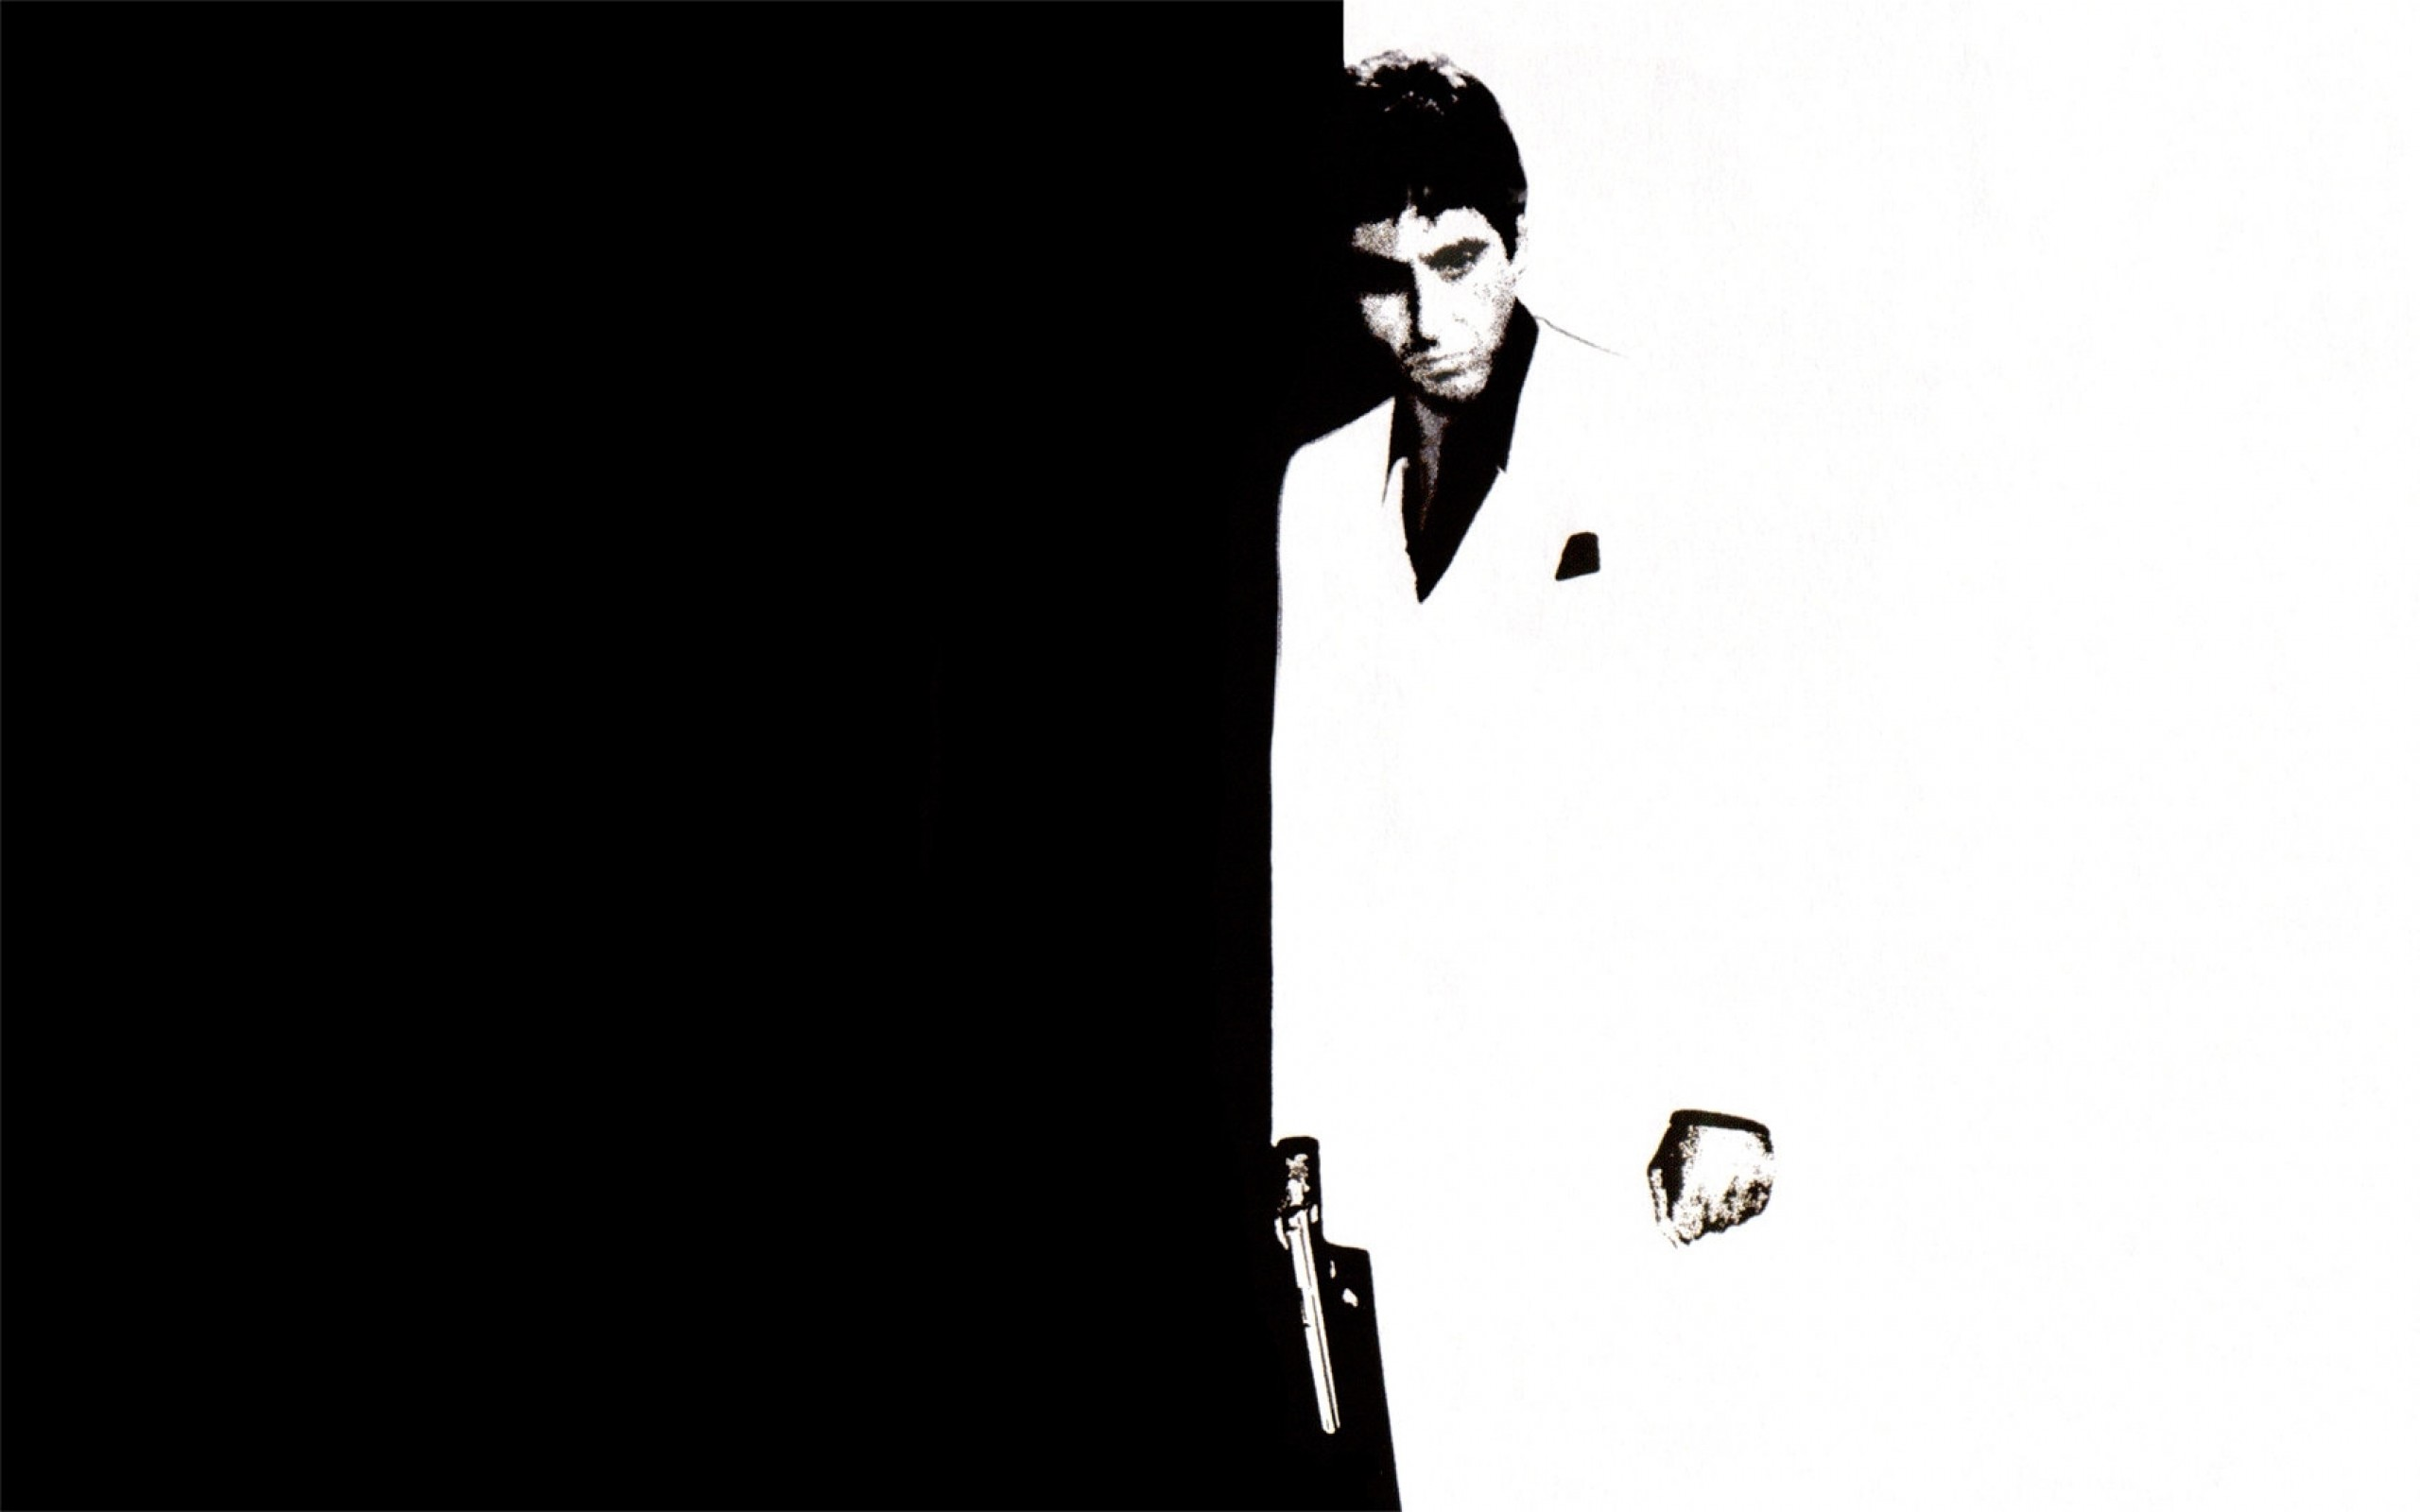 Scarface Wallpaper Hd 72 Images